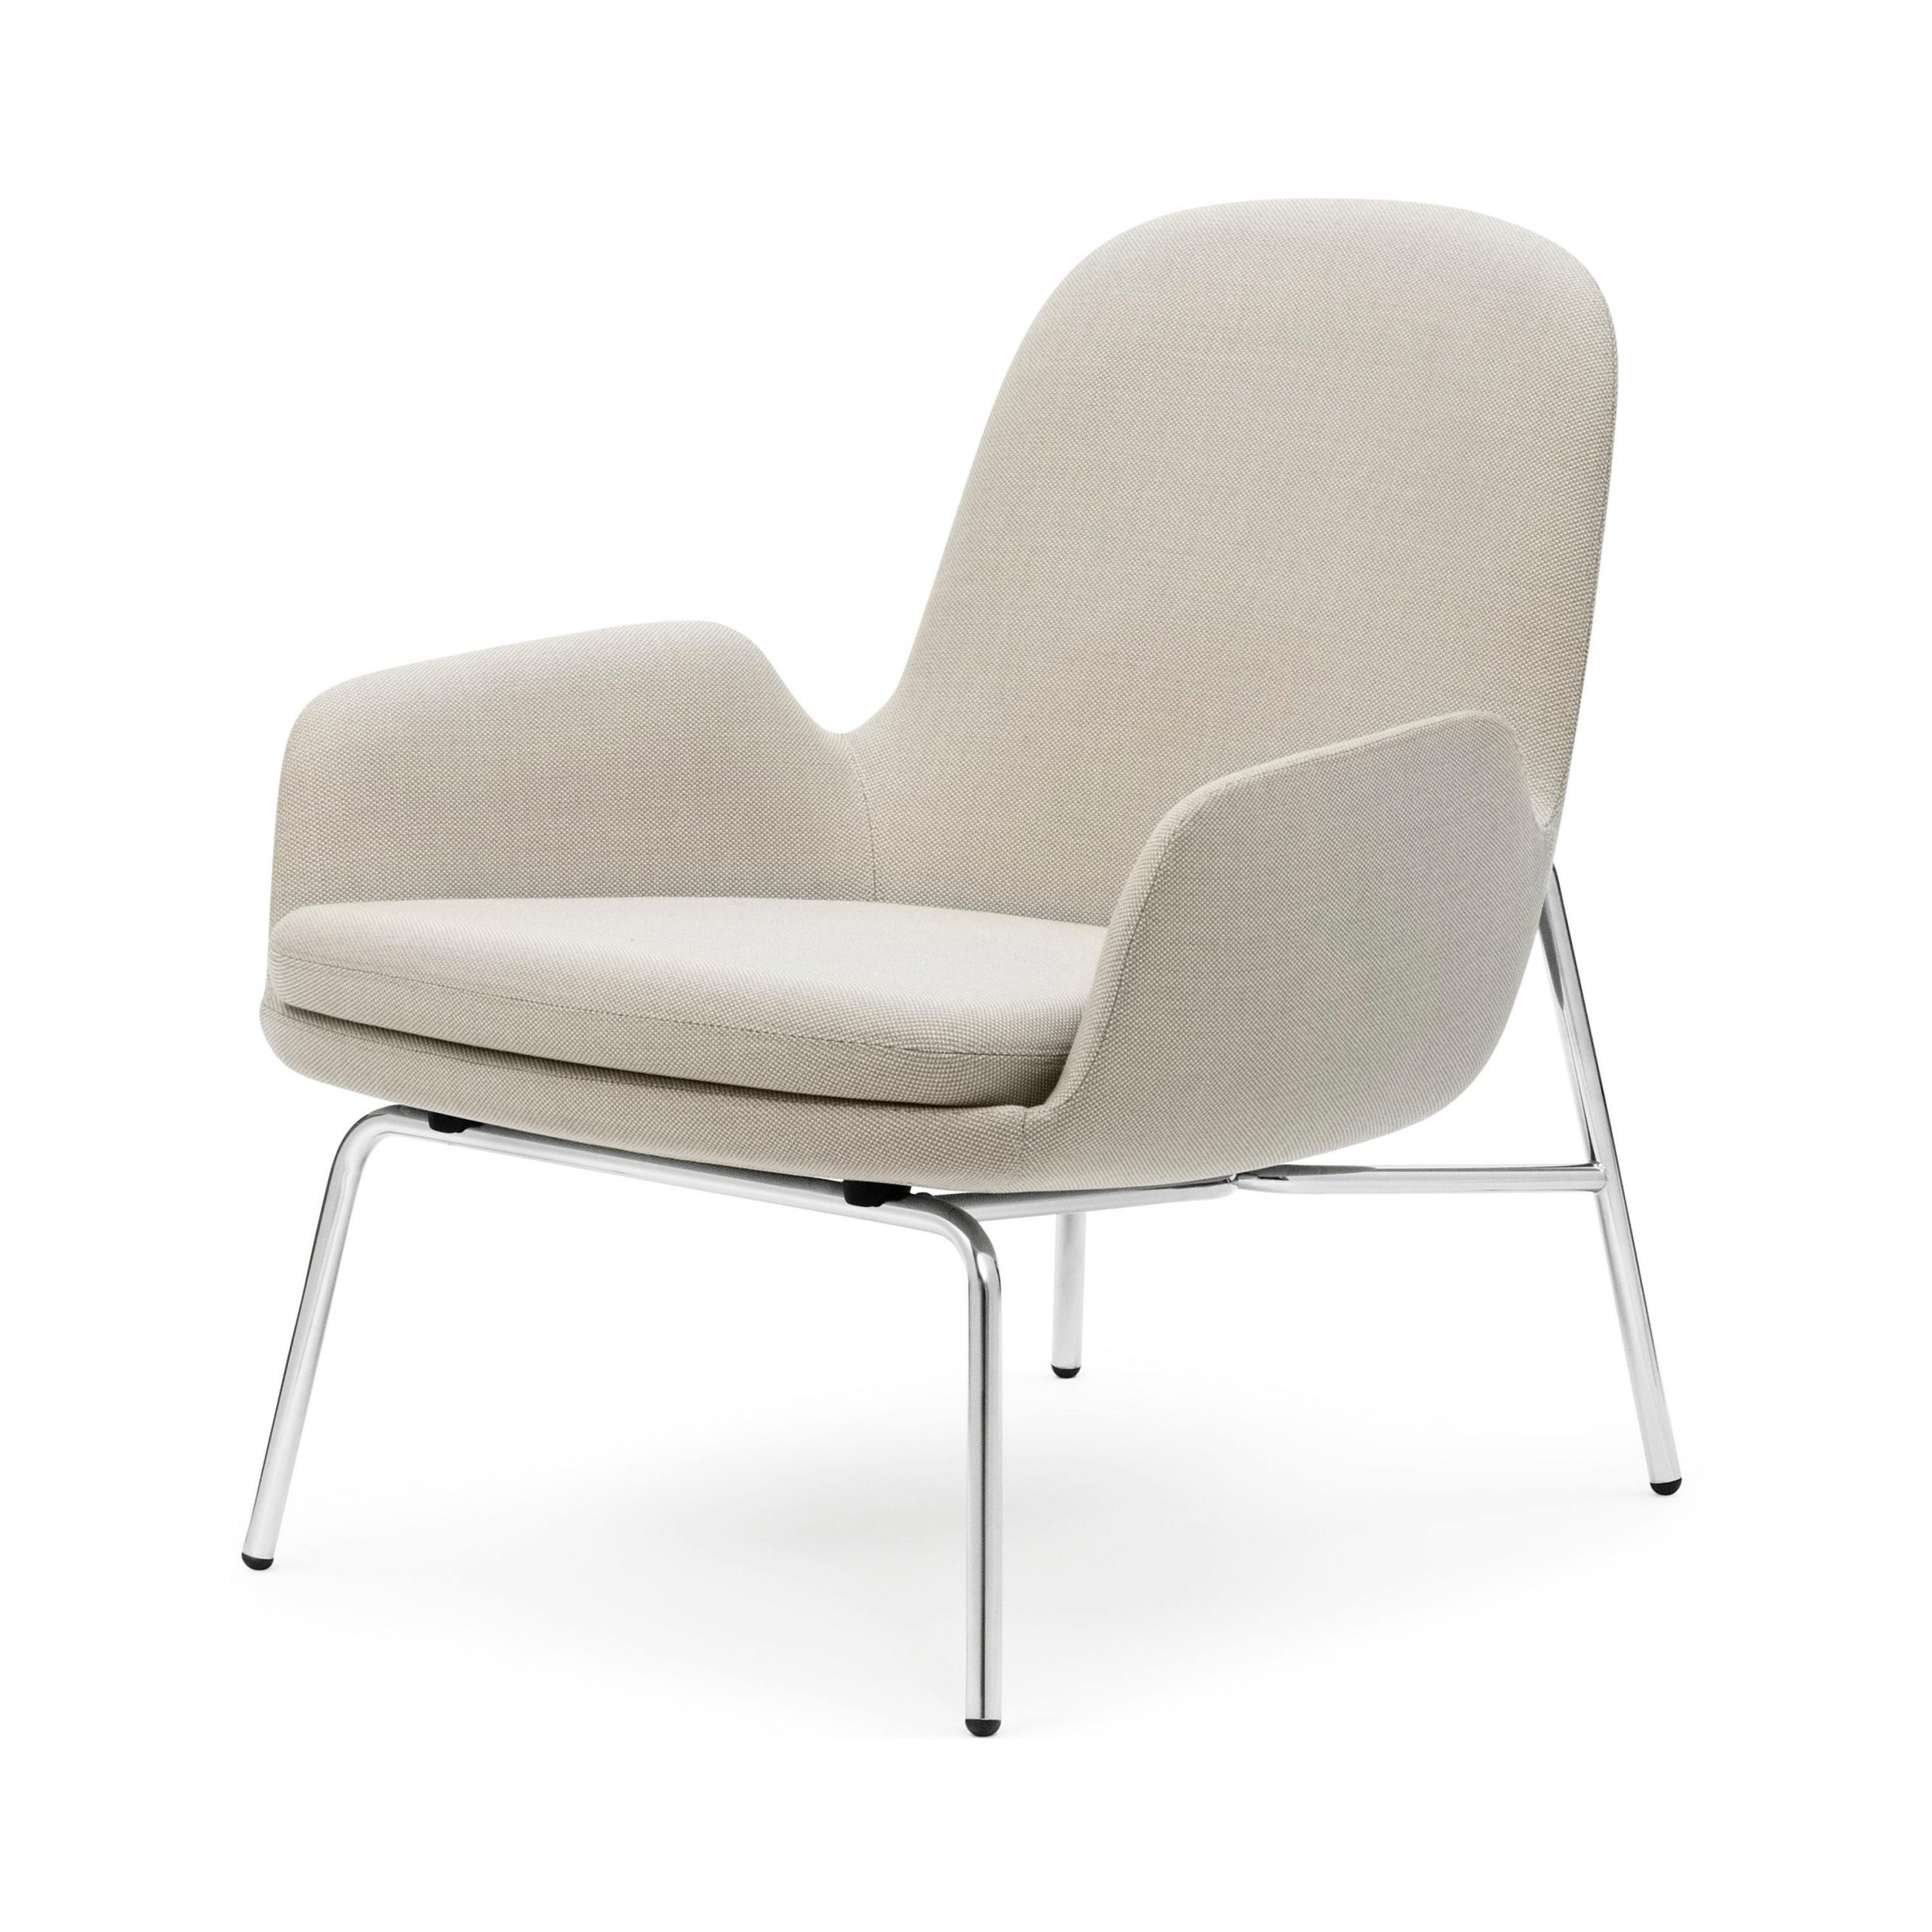 Era Lounge Chair – Low Metal Legs Throughout Lounge Chairs With Metal Leg (View 6 of 15)